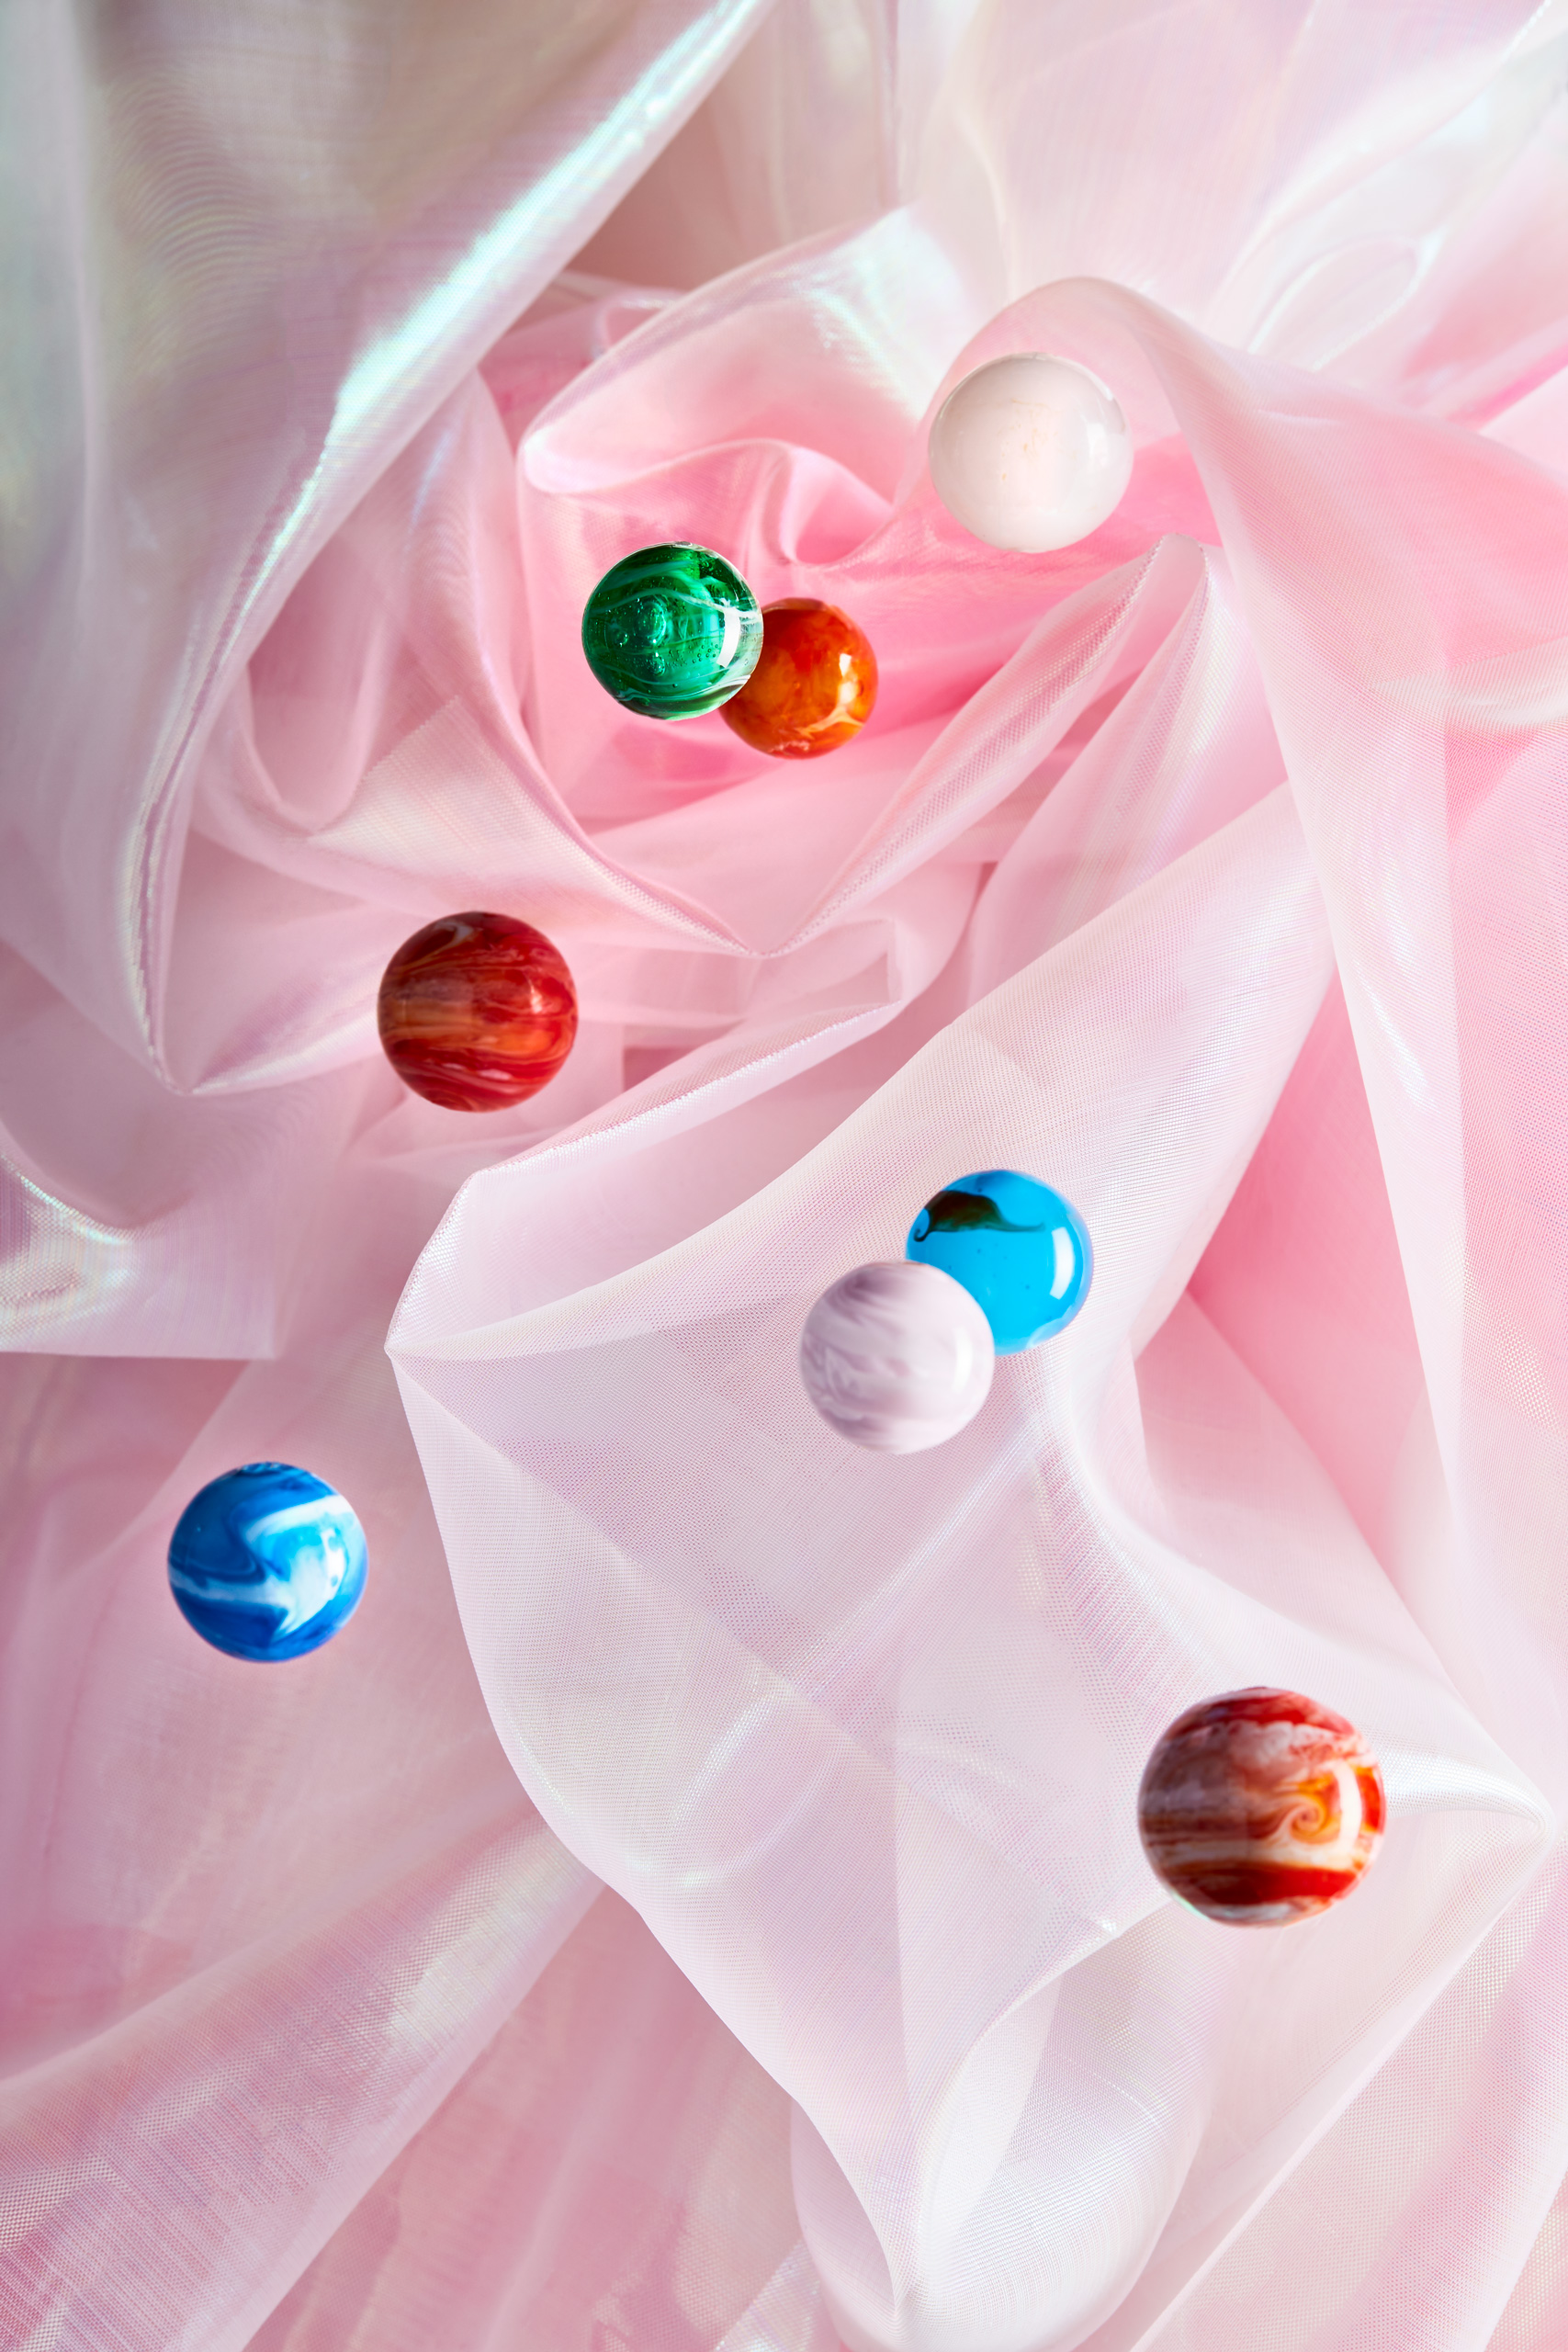 Glass planets against pink fabric